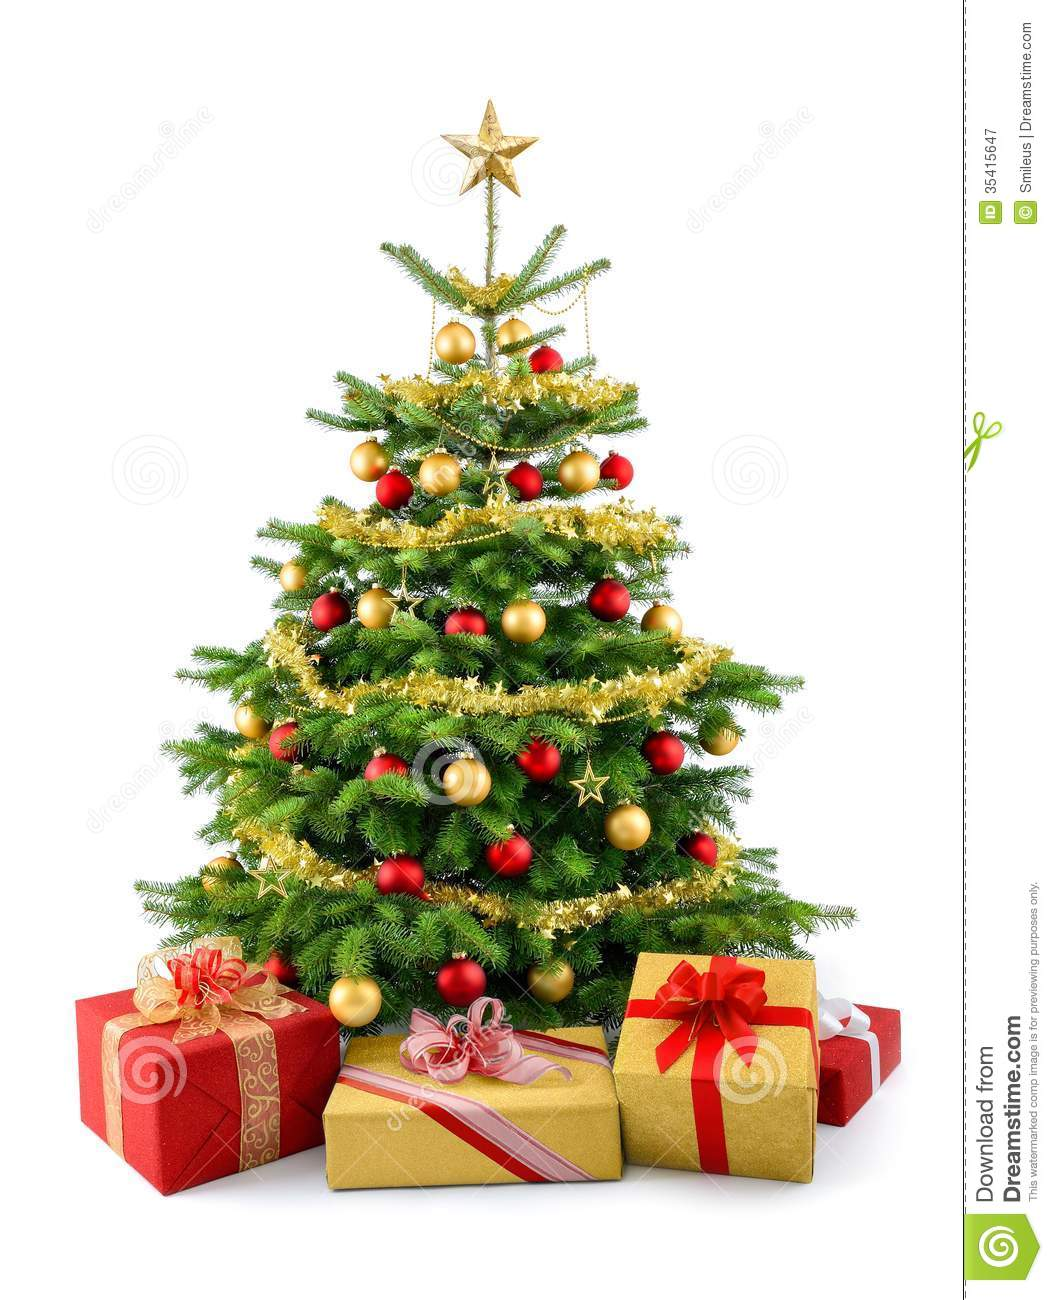 Christmas tree vector image royalty free stock image image 34973066 - Christmas Tree Vector Image Royalty Free Stock Image Image 34973066 Christmas Tree Decorated In Red